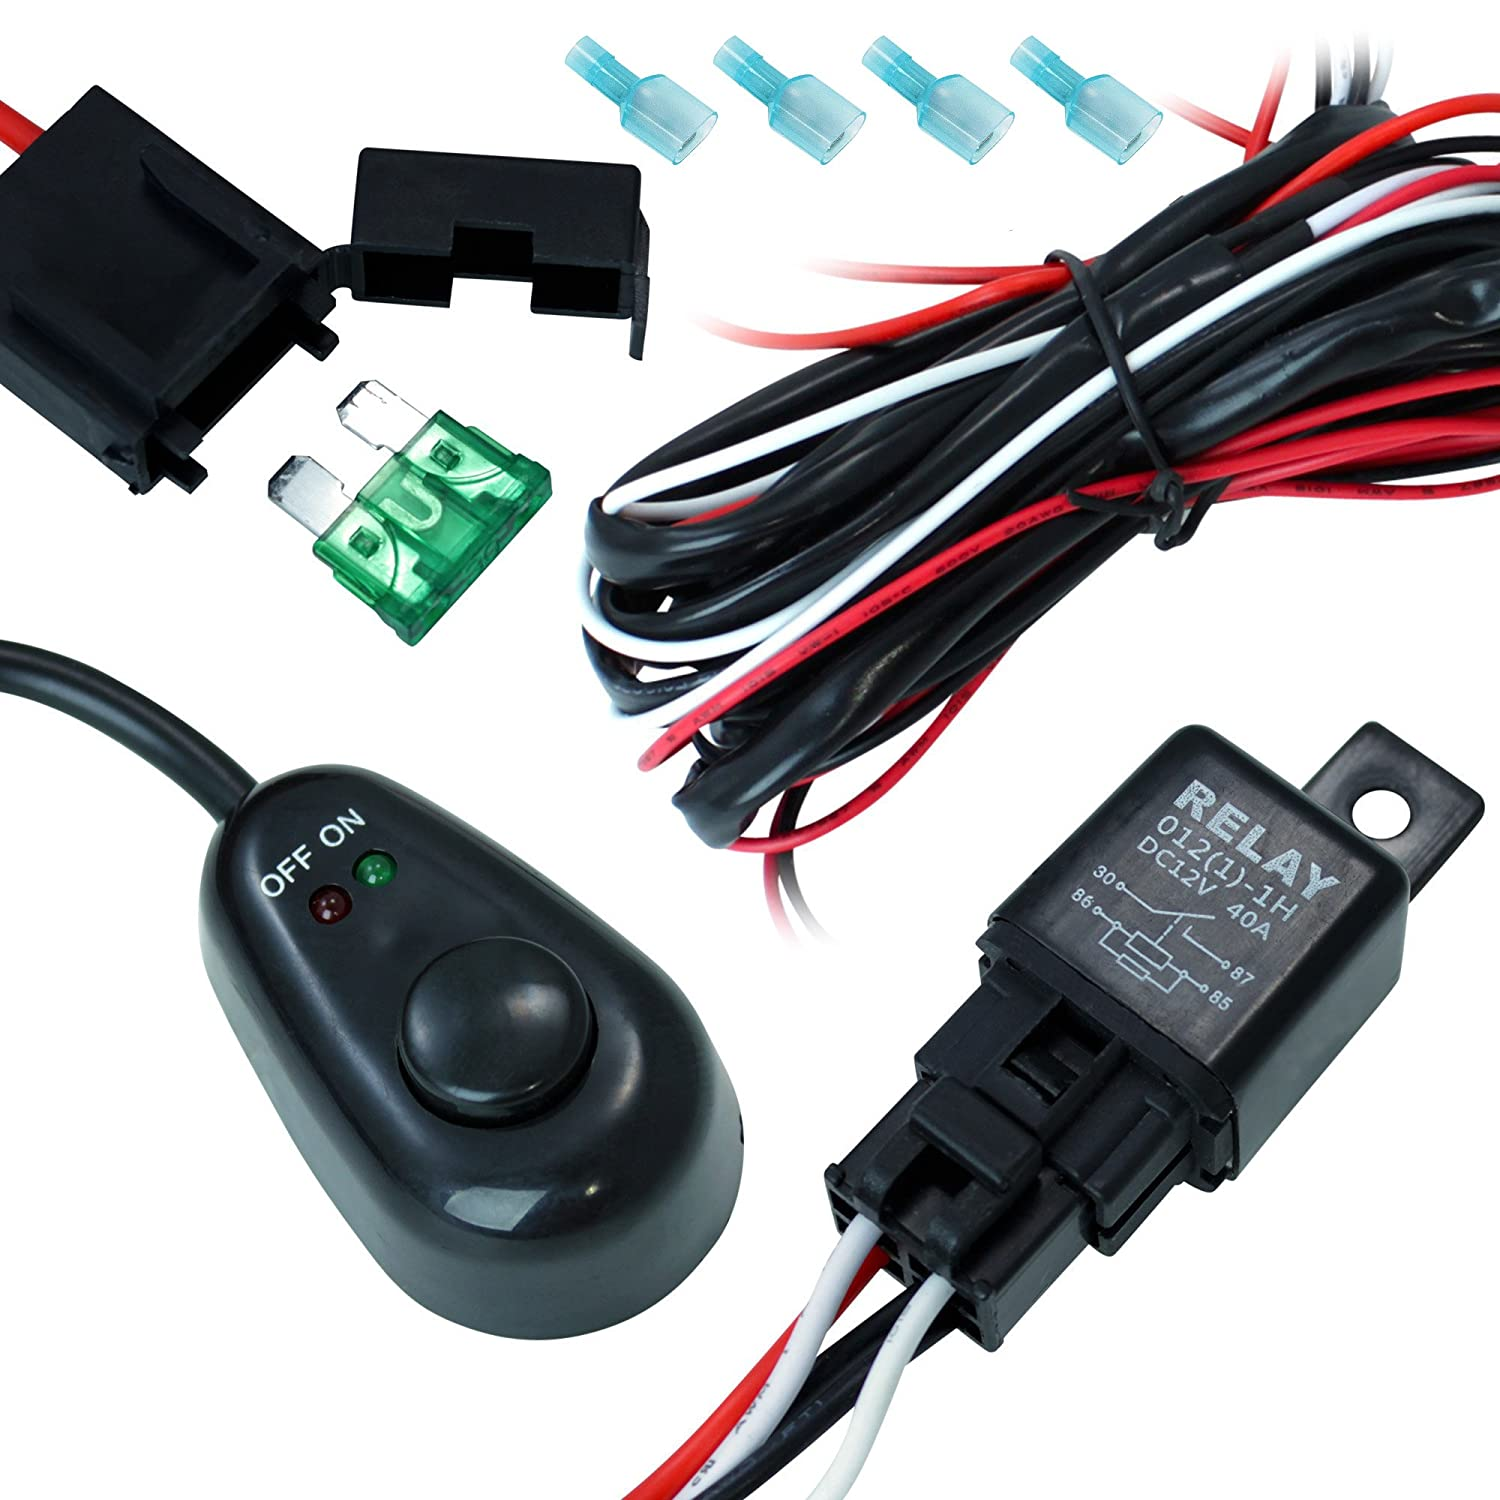 8160vxJfFvL._SL1500_ amazon com dt moto™ off road atv jeep led light bar wiring off road wiring harness at mifinder.co